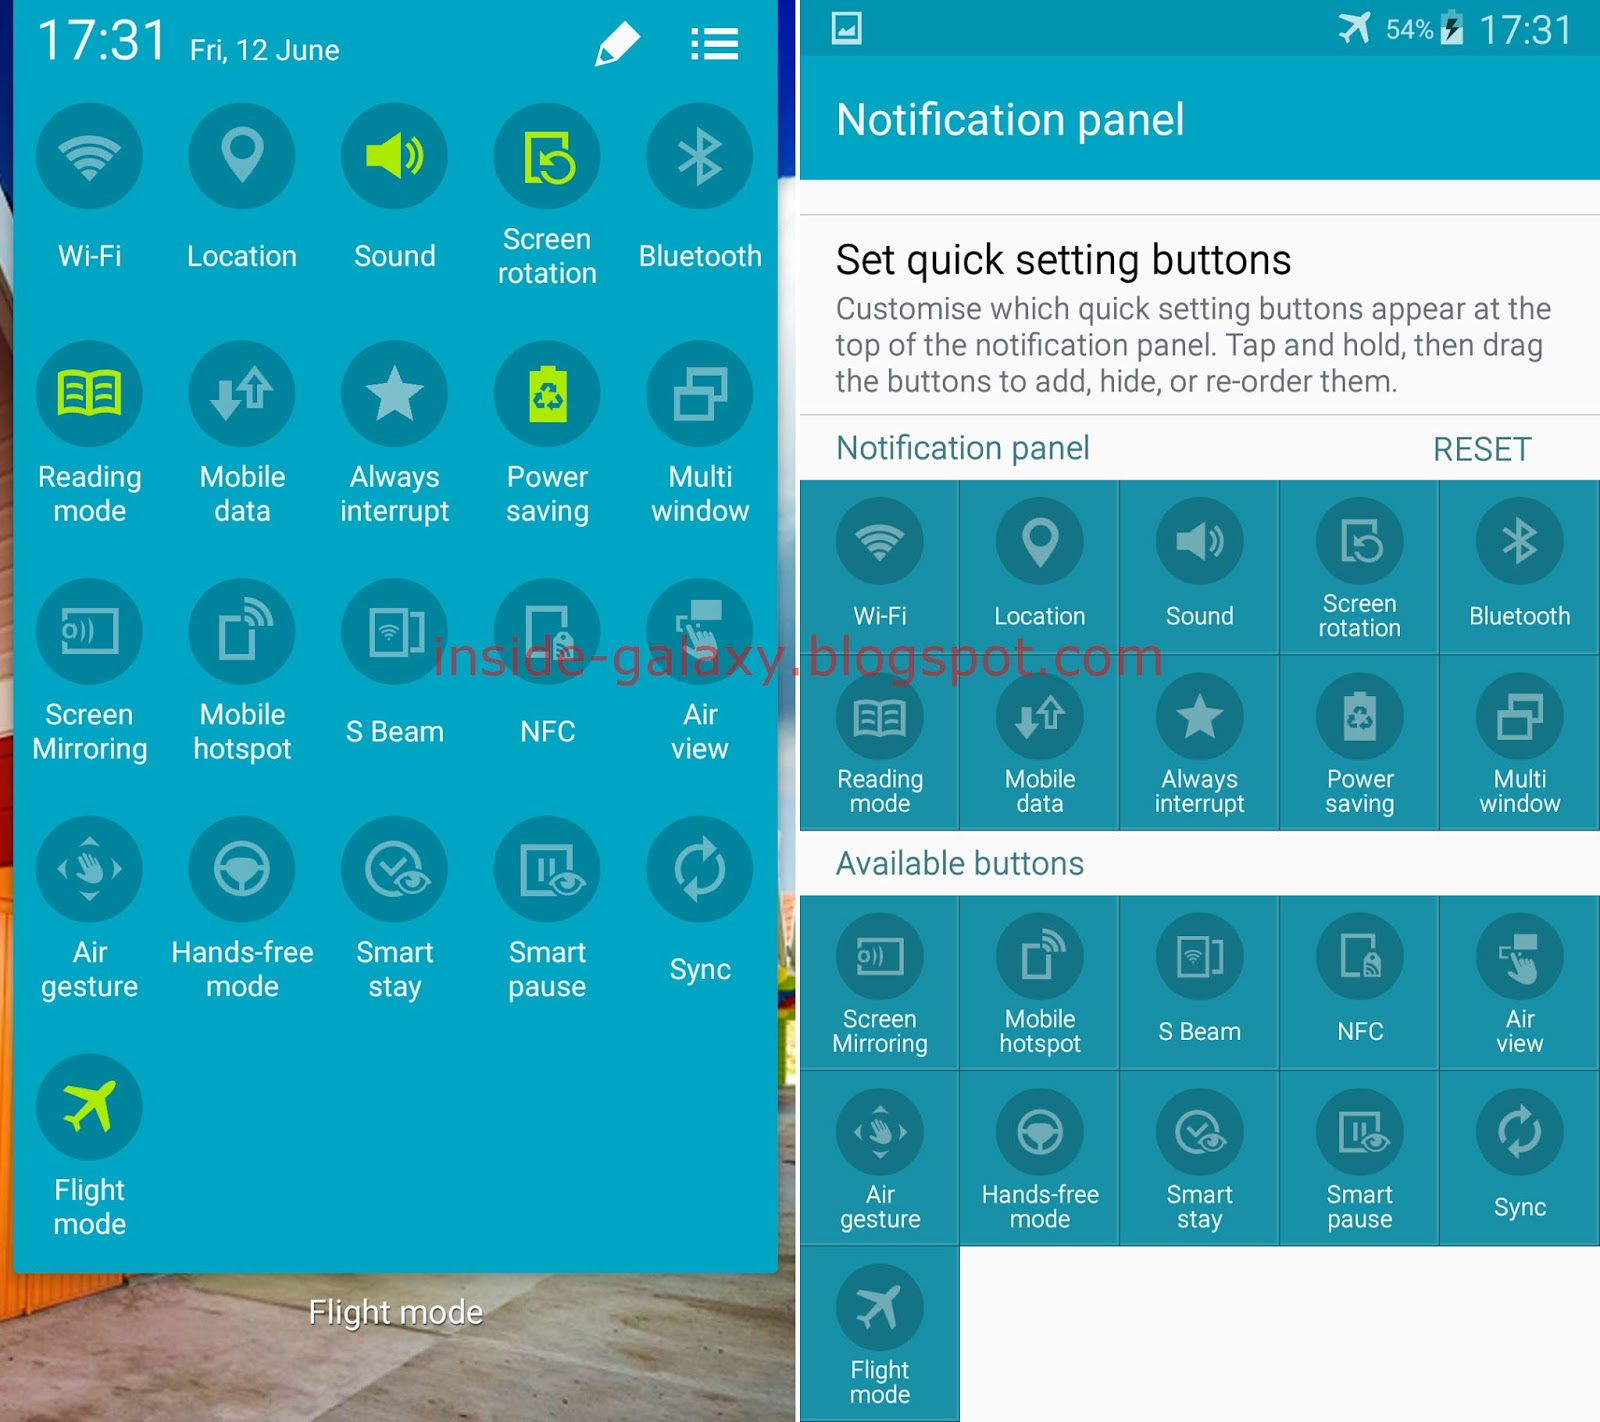 Samsung galaxy s4 how to use quick settings panel in android 501 samsung galaxy s4 how to use quick settings panel in android 501 lollipop voltagebd Gallery